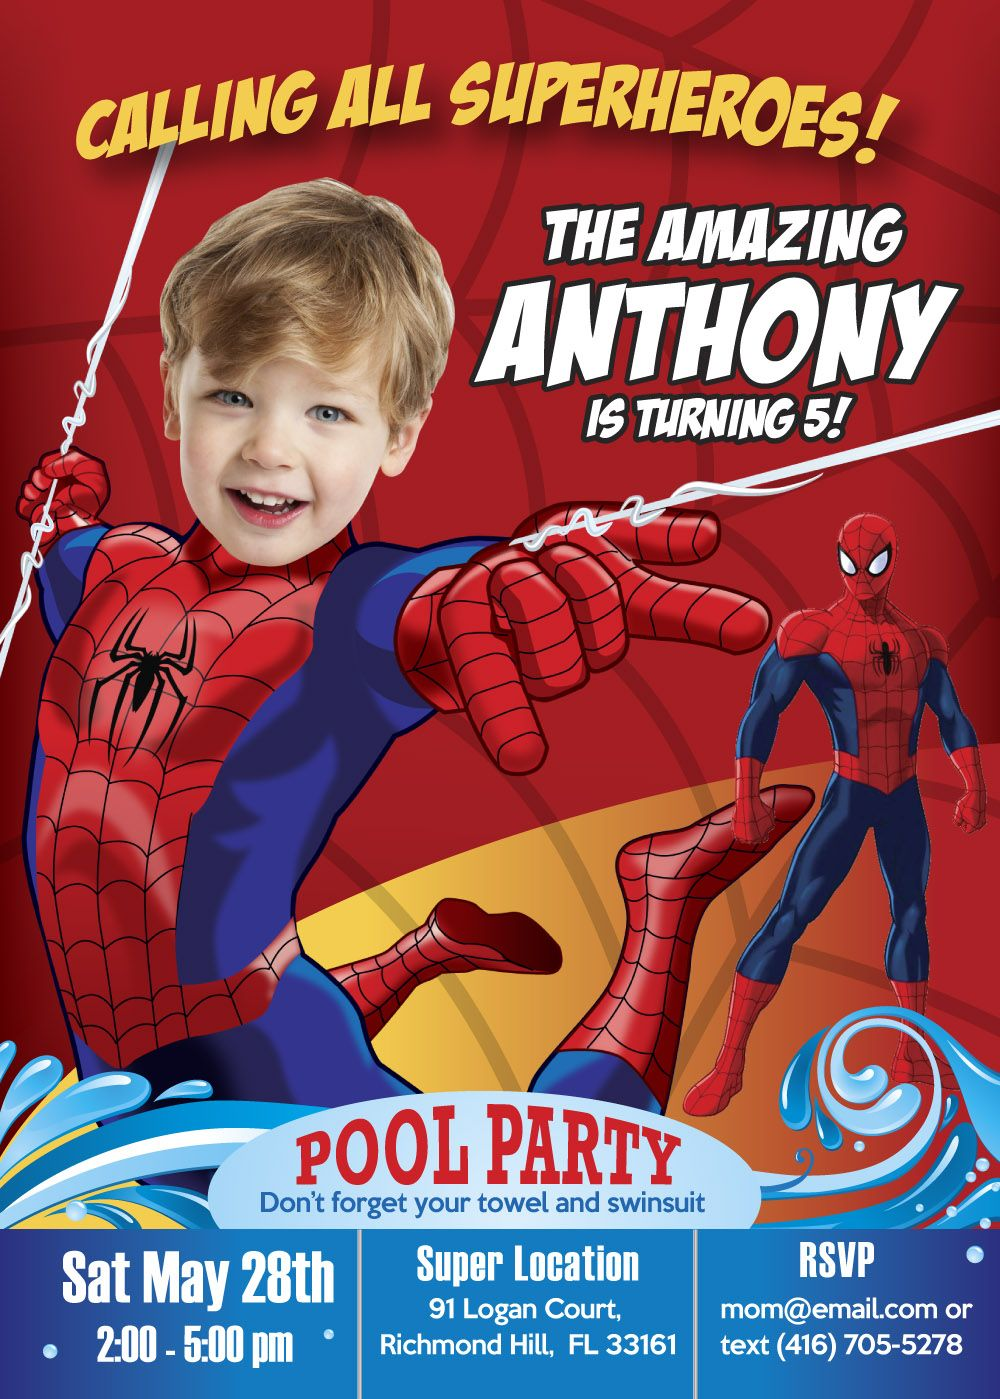 Pool Party Spiderman Birthday Invitation with your boy as Spiderman